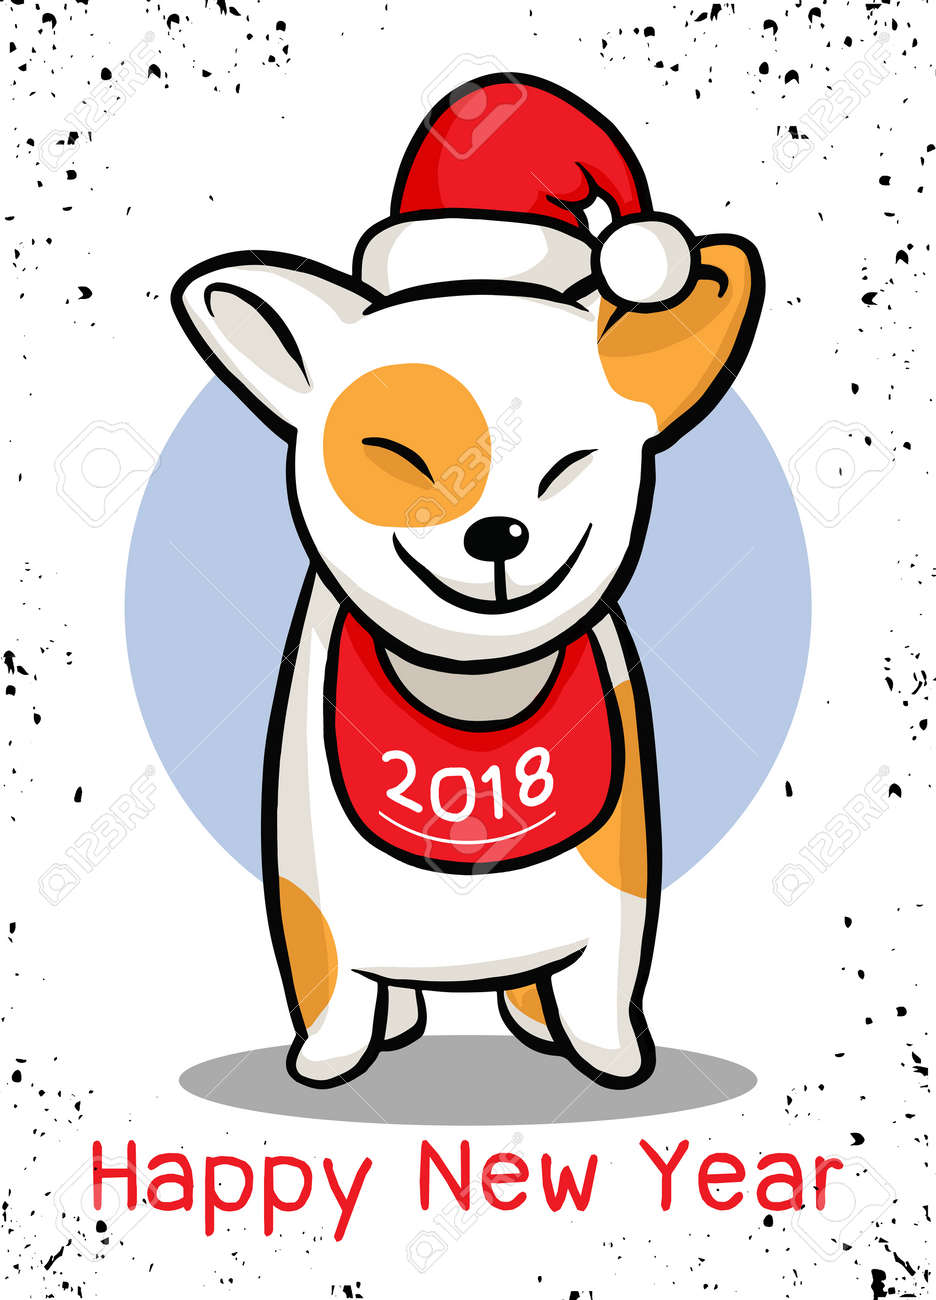 2018 happy new year greeting card christmas vector illustration of a cute doggy in a